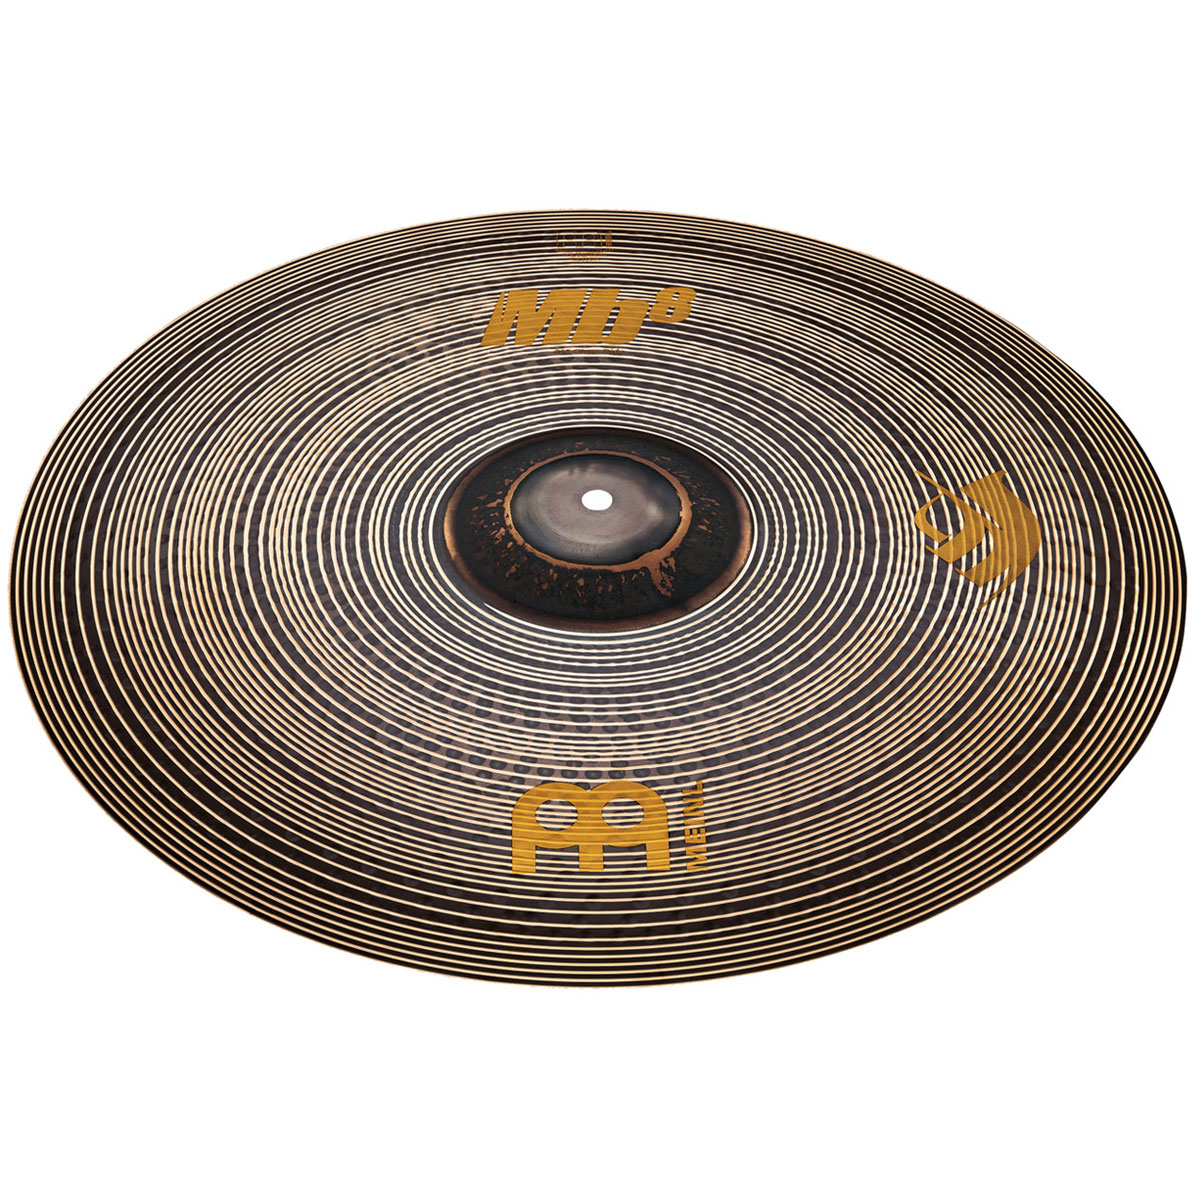 "Meinl 21"" MB8 Ghost Ride Cymbal"